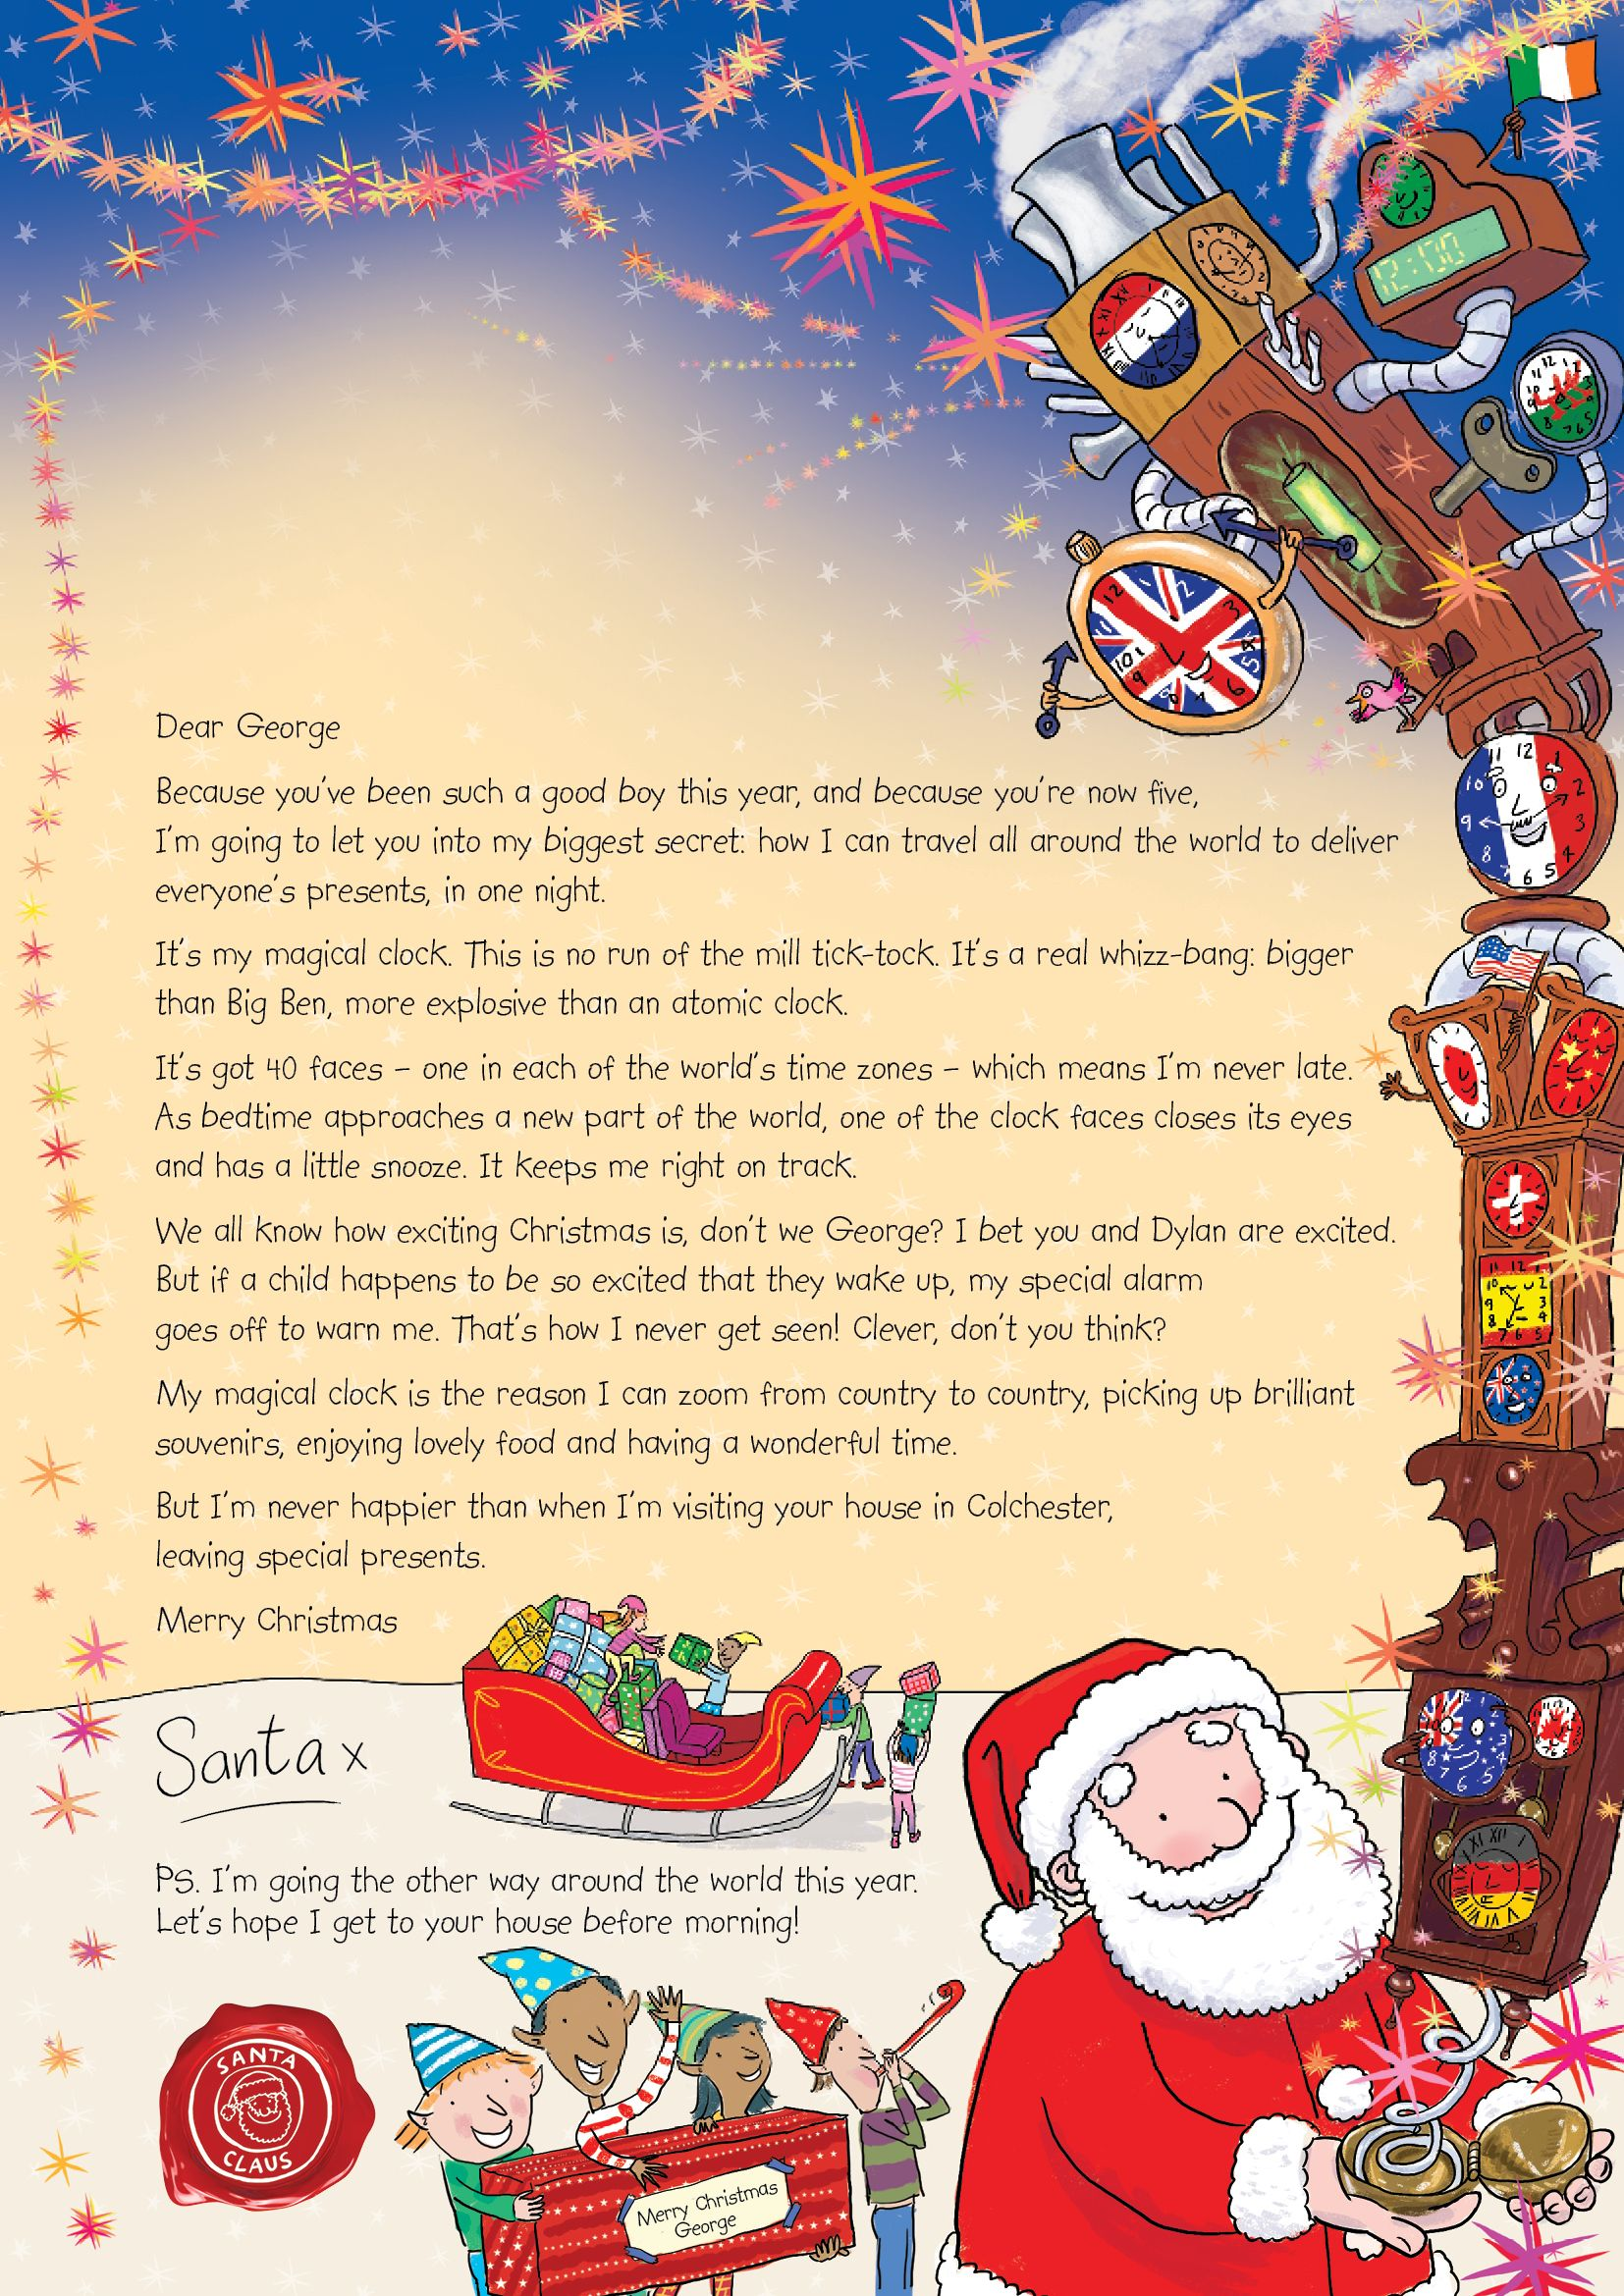 Nspcc letter from santa each letter is uniquely personalised nspcc letter from santa each letter is uniquely personalised with the childs name spiritdancerdesigns Image collections